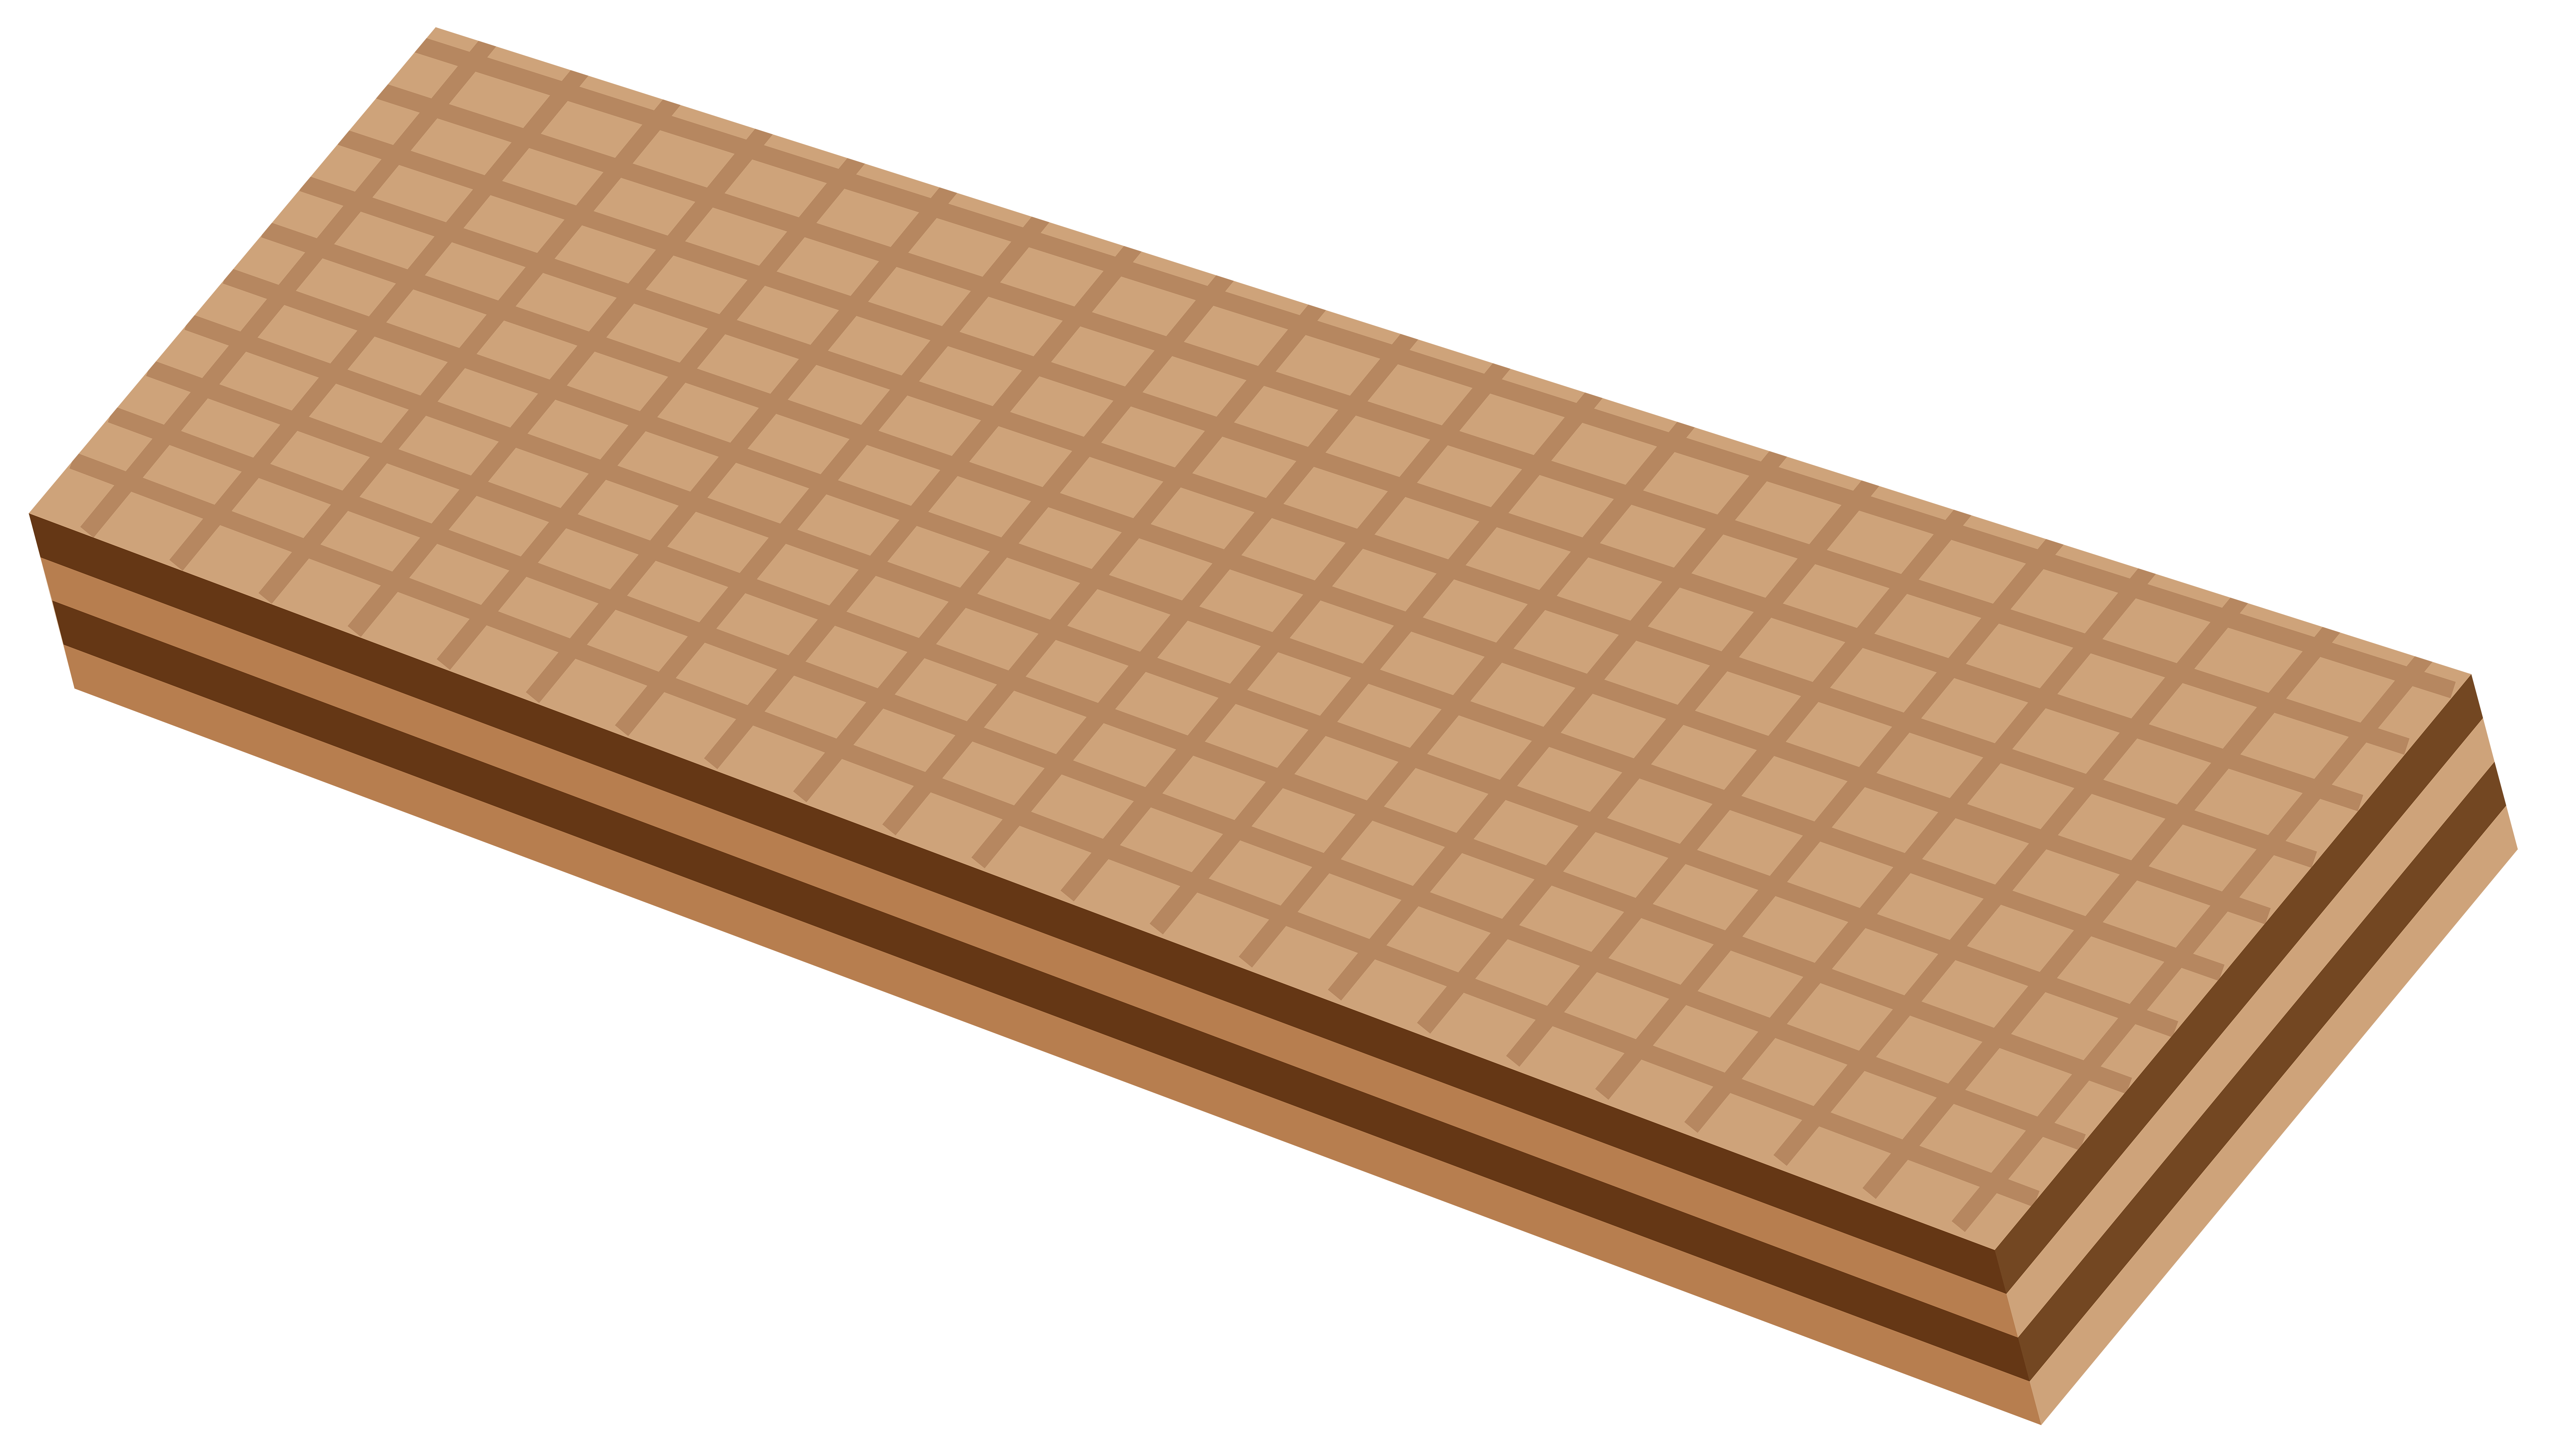 Wafer clipart Art  Image full PNG